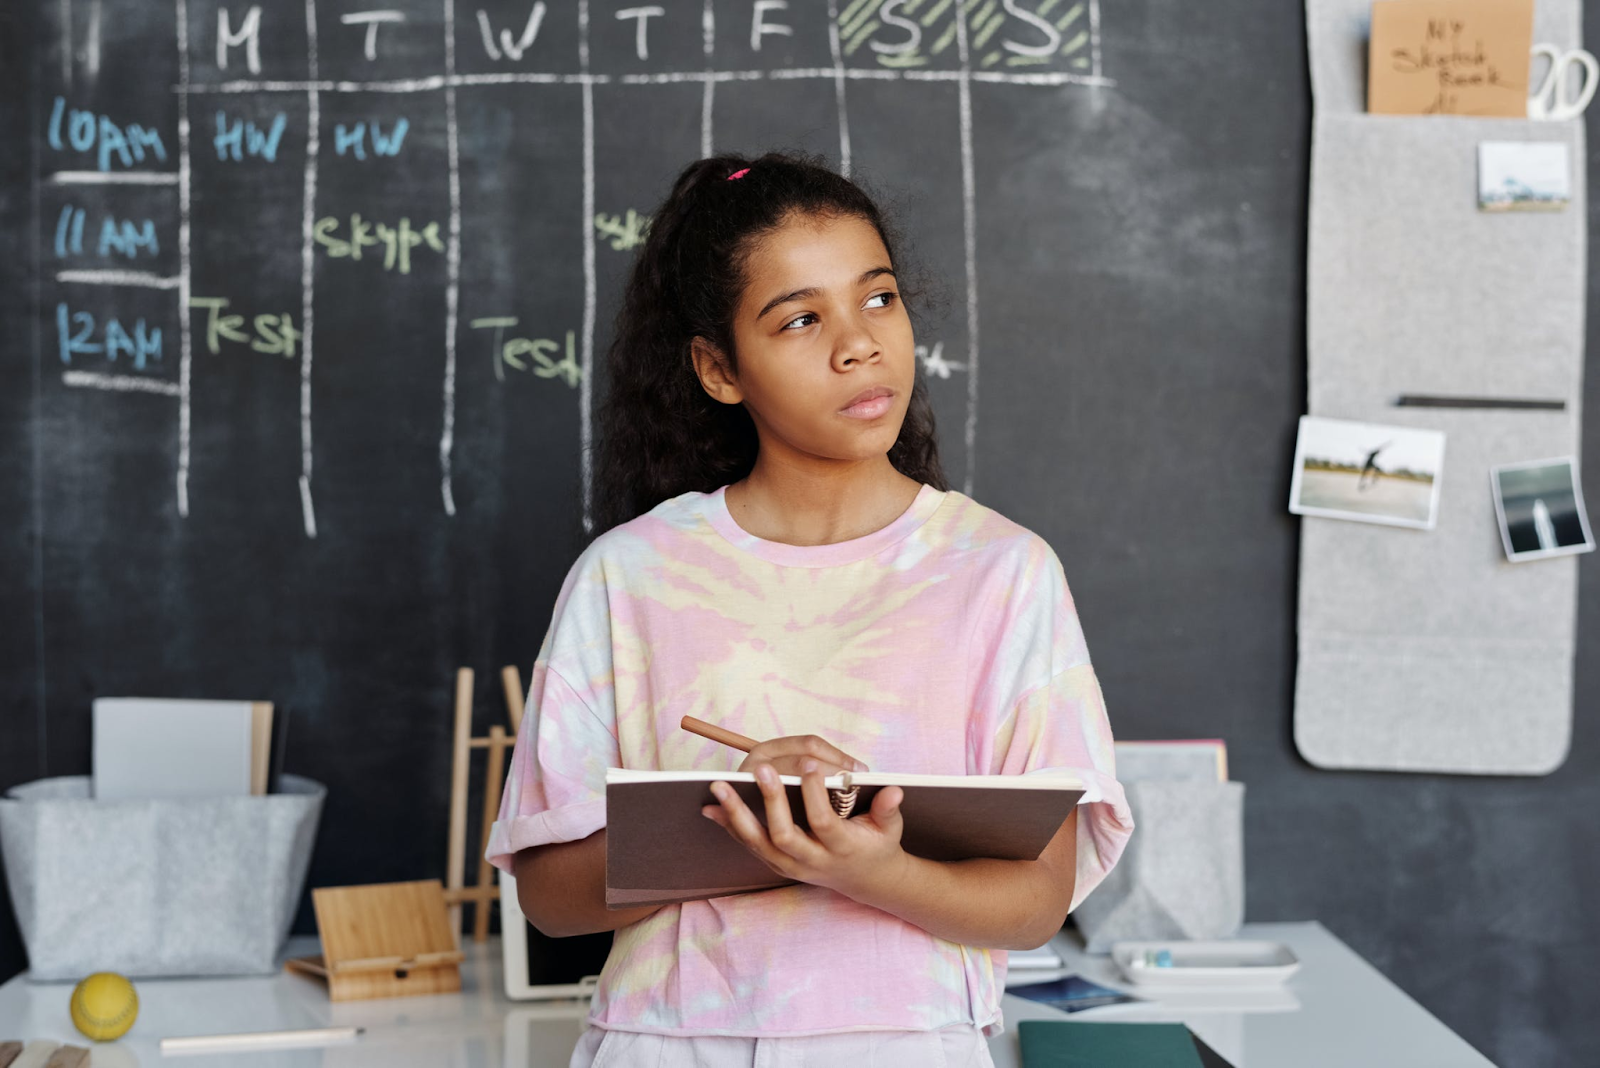 Thinking About Homeschooling Future Children? Here's How to Prepare